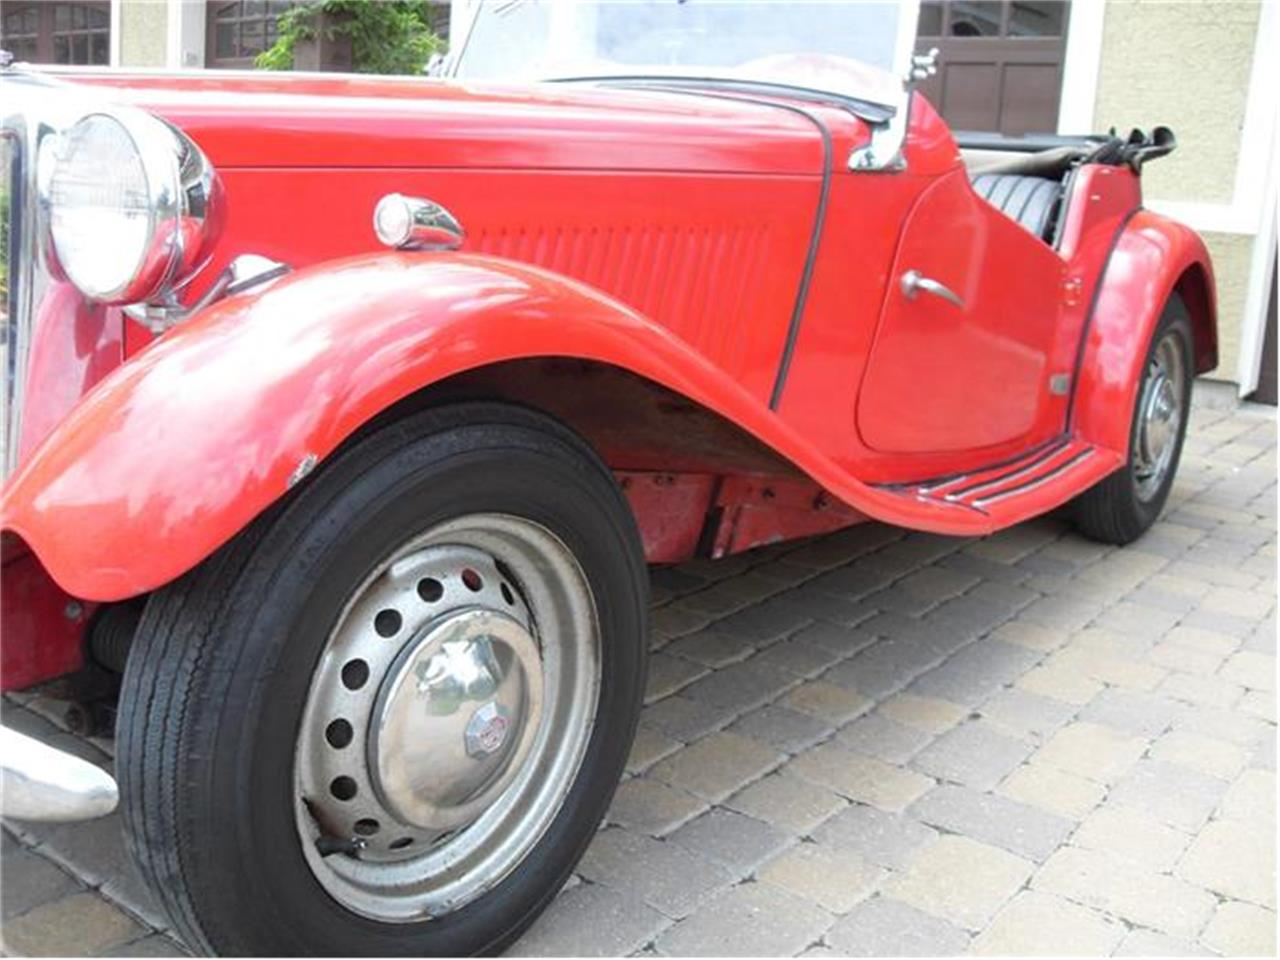 Large Picture of '50 MG TD located in Conroe Texas - $29,900.00 - 3X1F